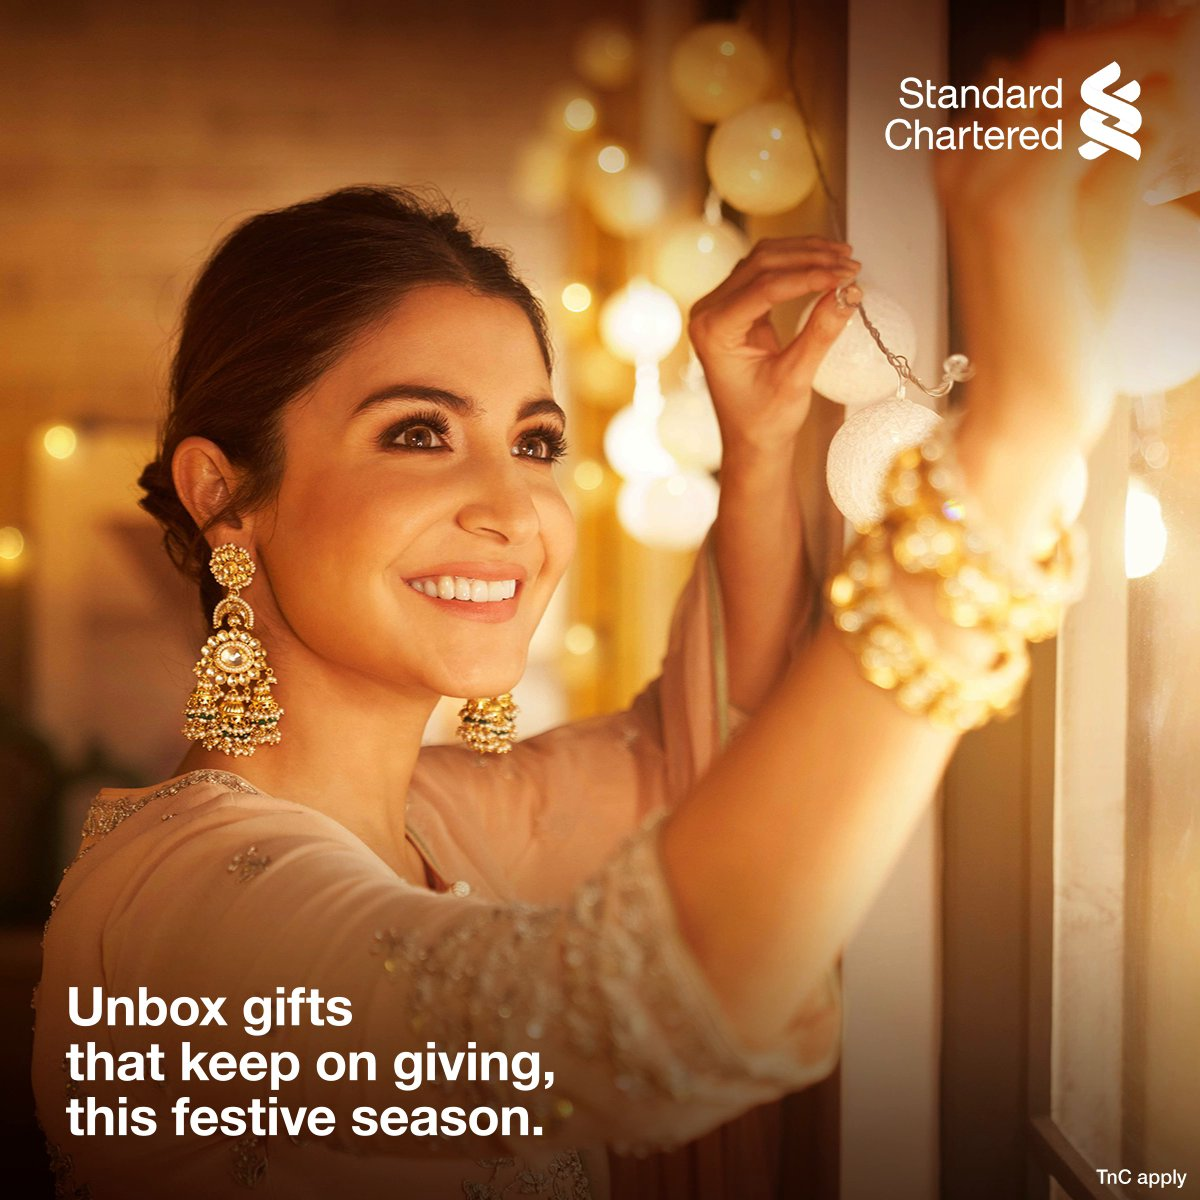 This festive season, celebrate the #FestivalOfYou! To make this season even more special, we bring you 5x reward points on online spends with your Standard Chartered credit cards.  Offer valid from 16 Oct – 22 Oct 2020.   #FestiveSeason #StandardChartered